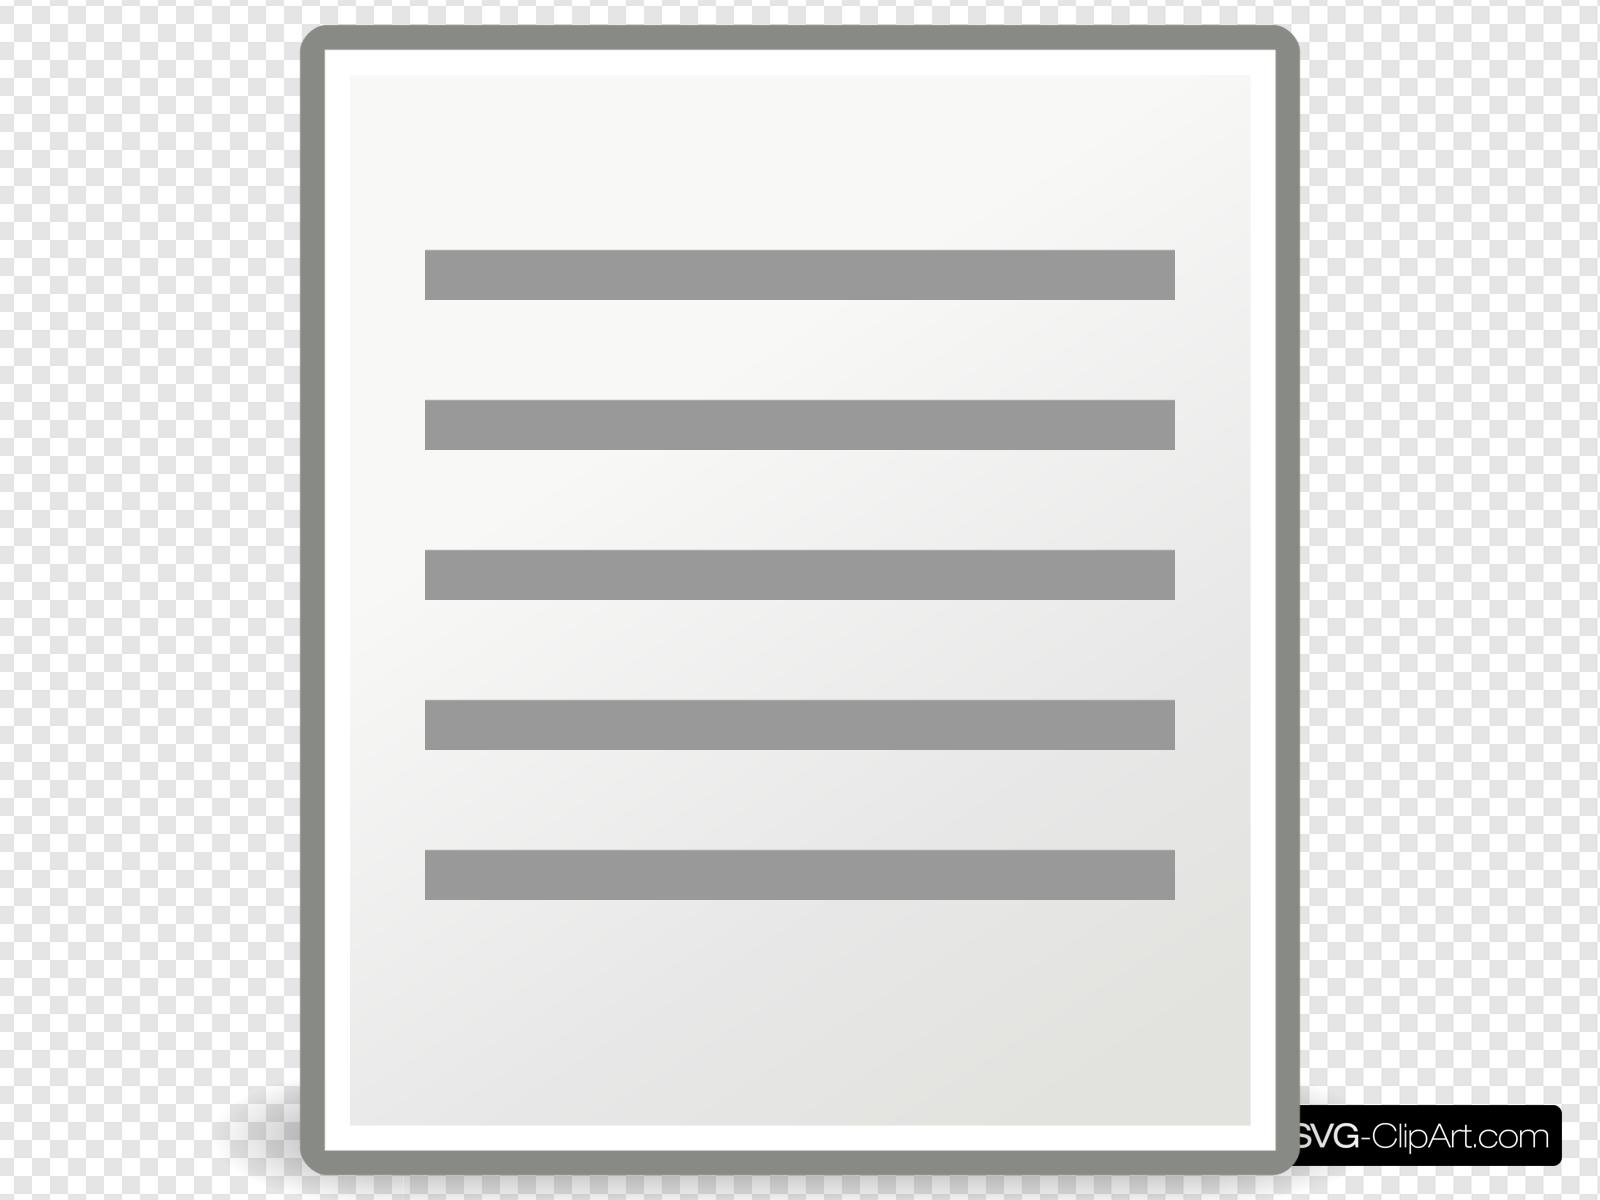 Format Justify Fill Clip art, Icon and SVG.